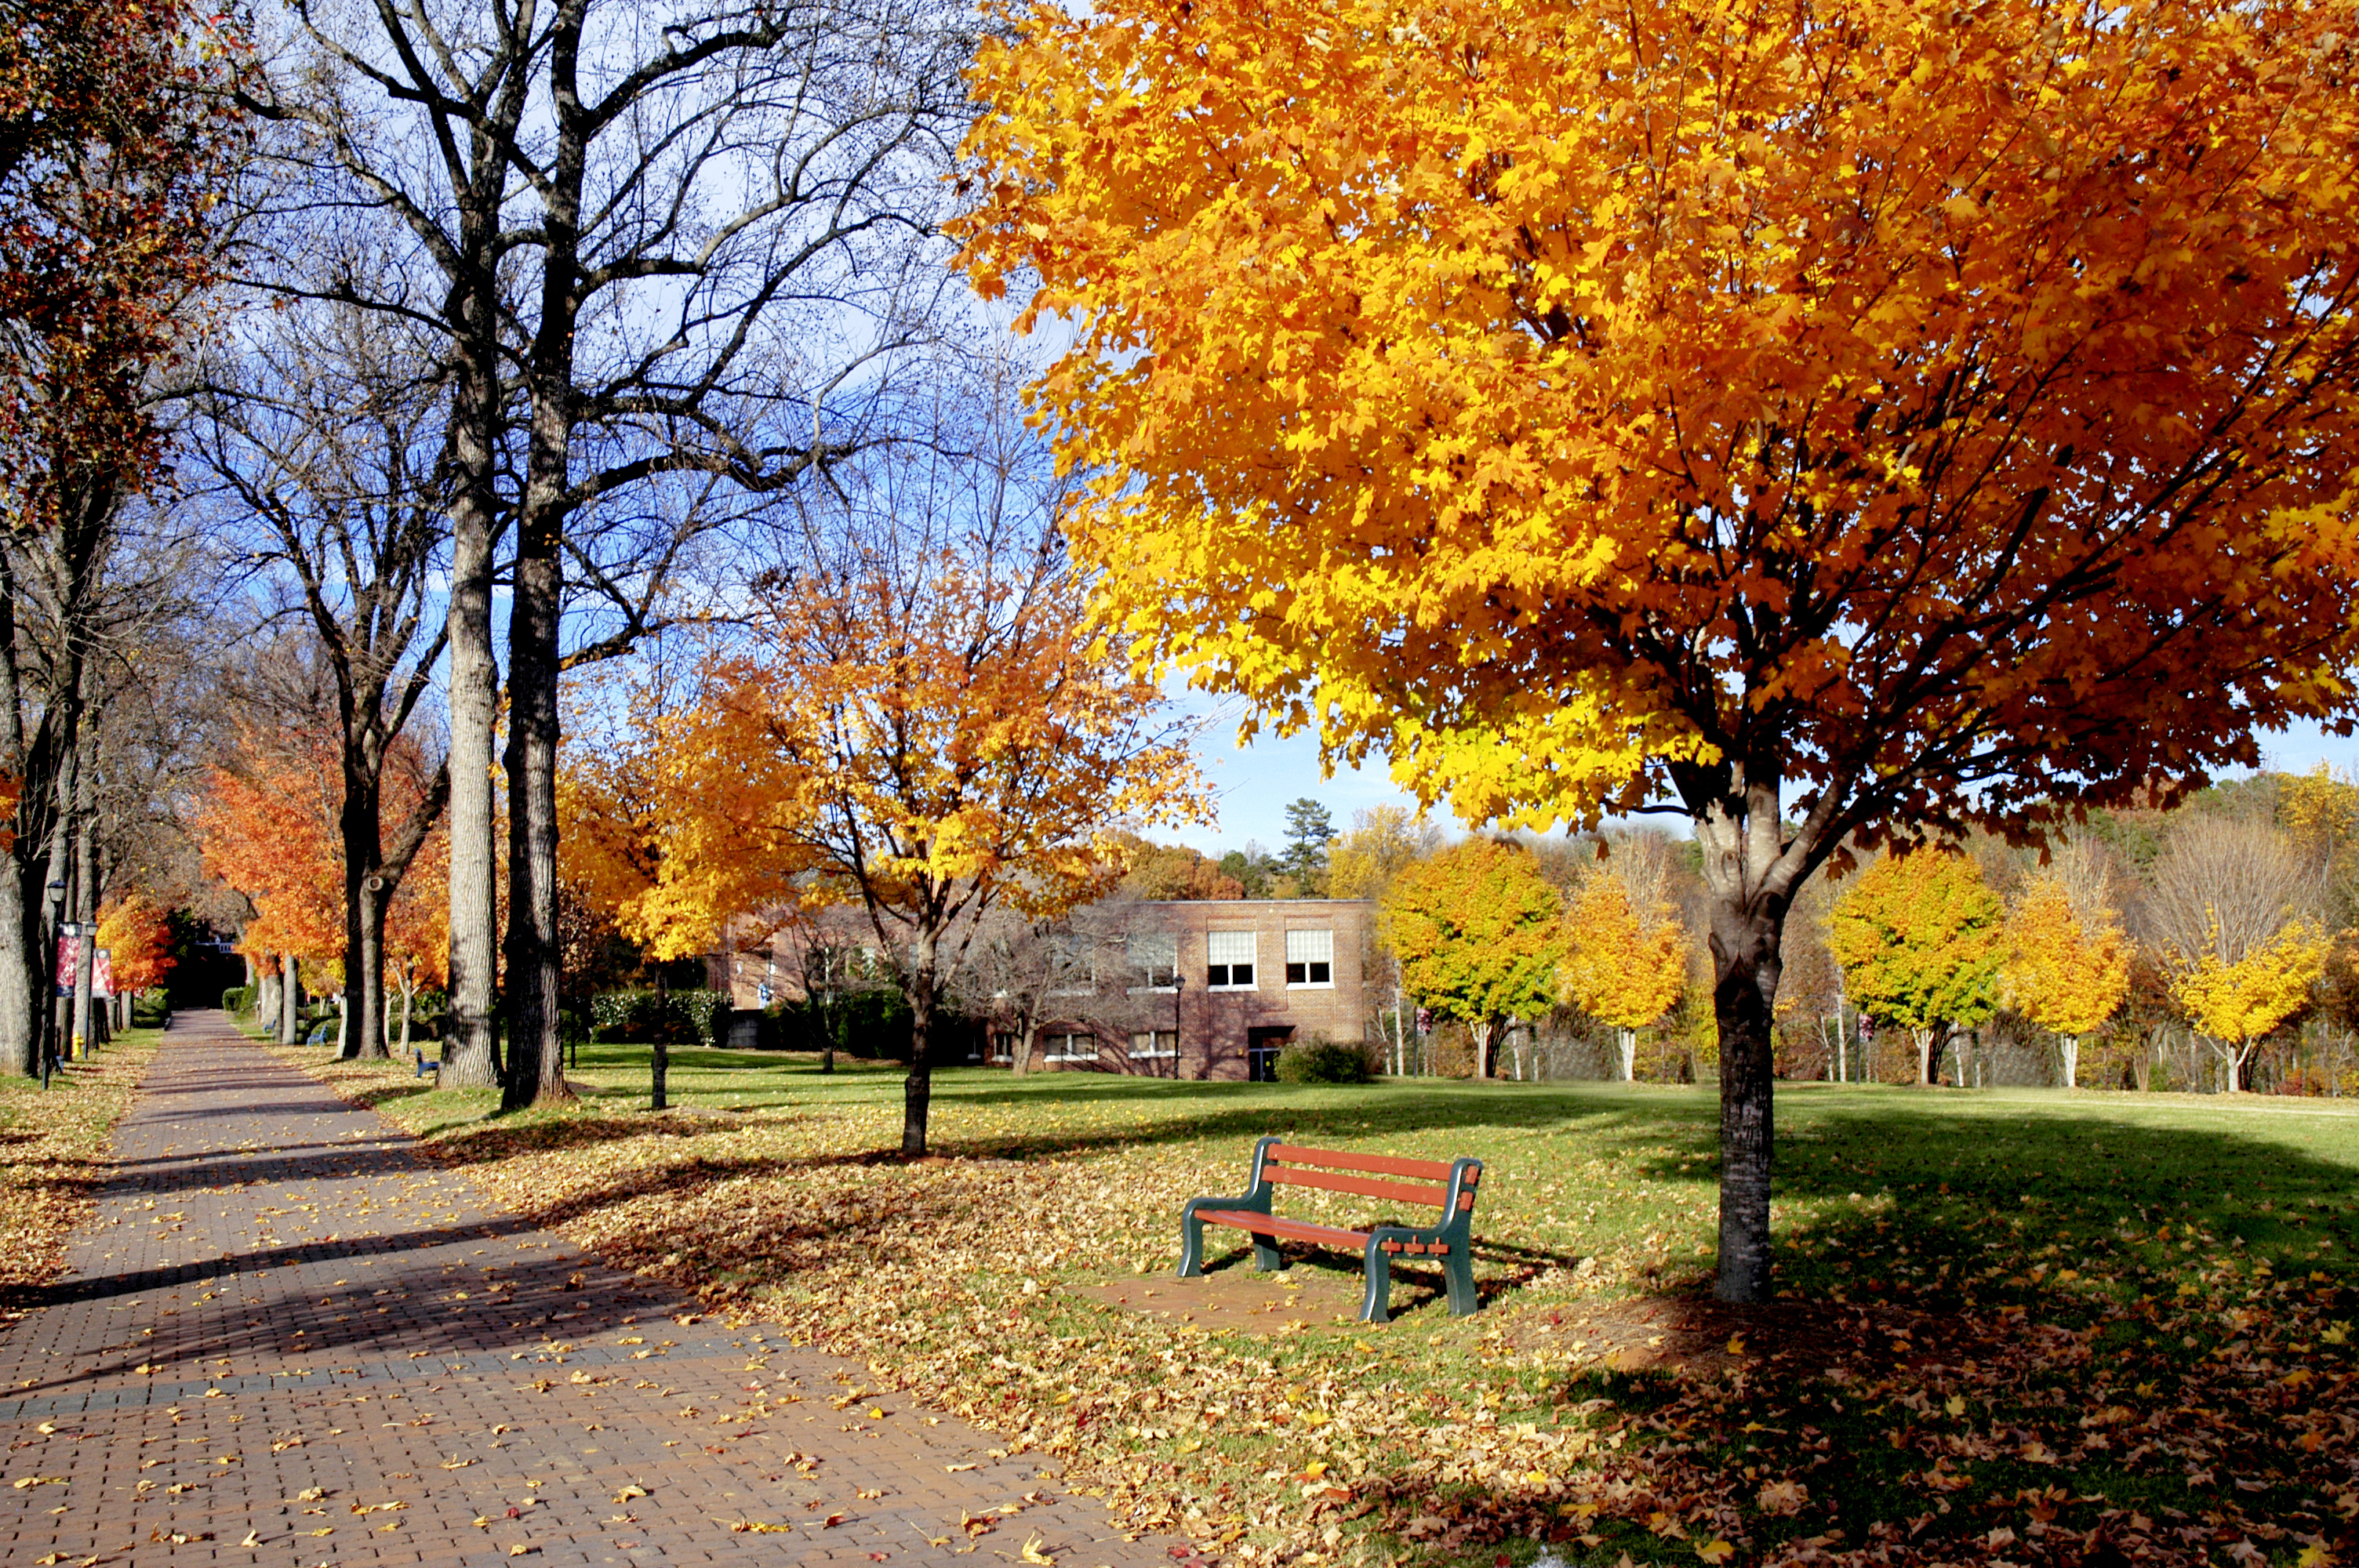 A landscape photograph of an empty college campus in the autumn; fallen leaves litter a brick path next to a forlorn bench.